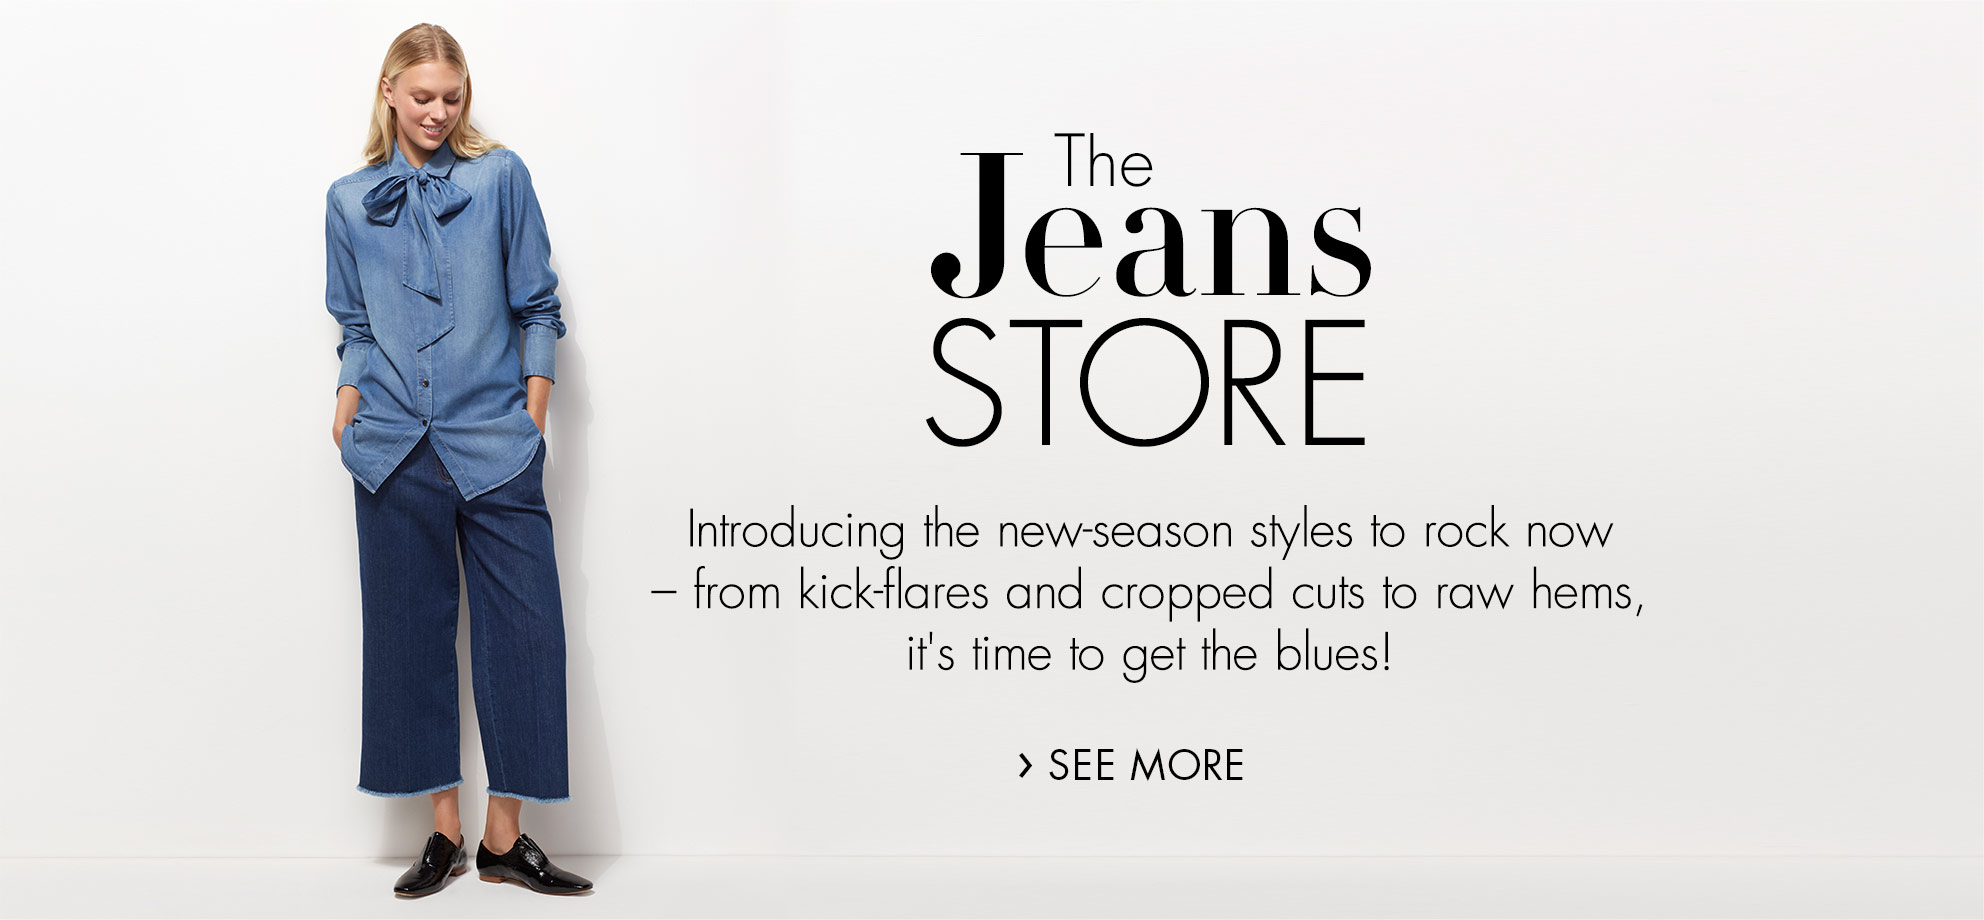 The Jeans Store - New Season